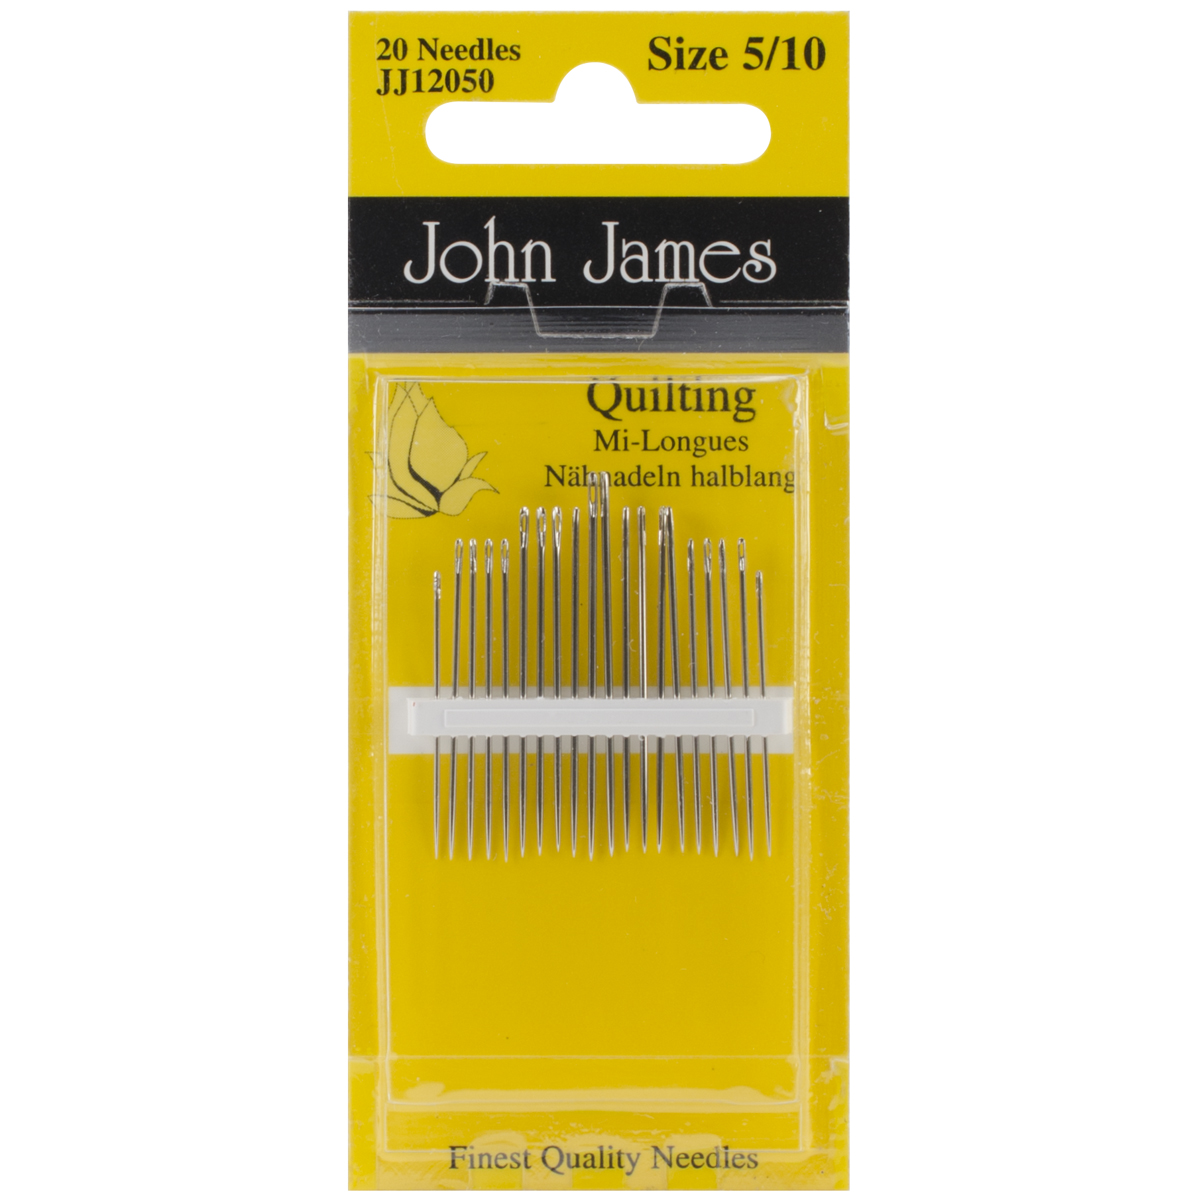 Quilting/Betweens Hand Needles-Size 5/10 20/Pkg